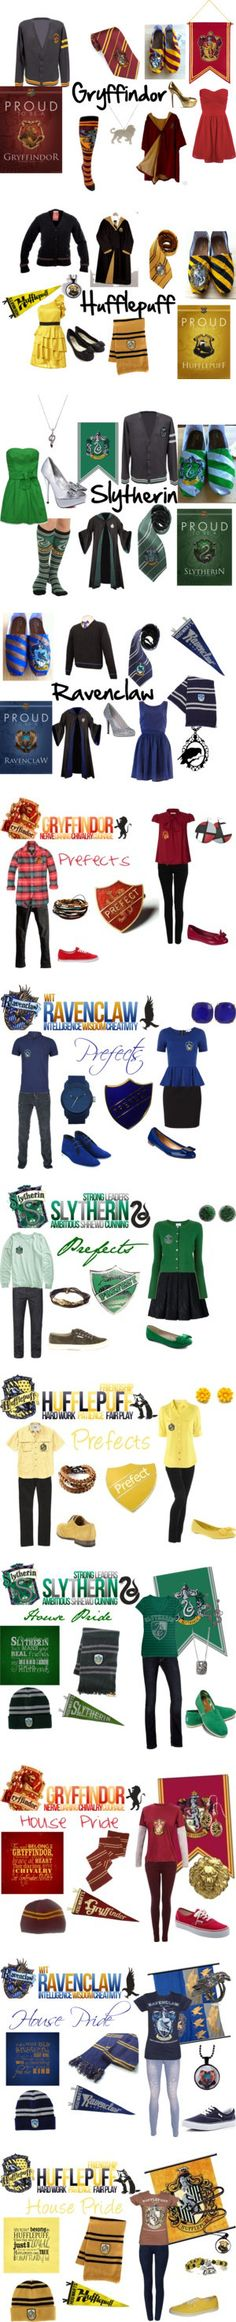 """Harry Potter"" by lillyred on Polyvore - I would totally rock being a Slytherin!"